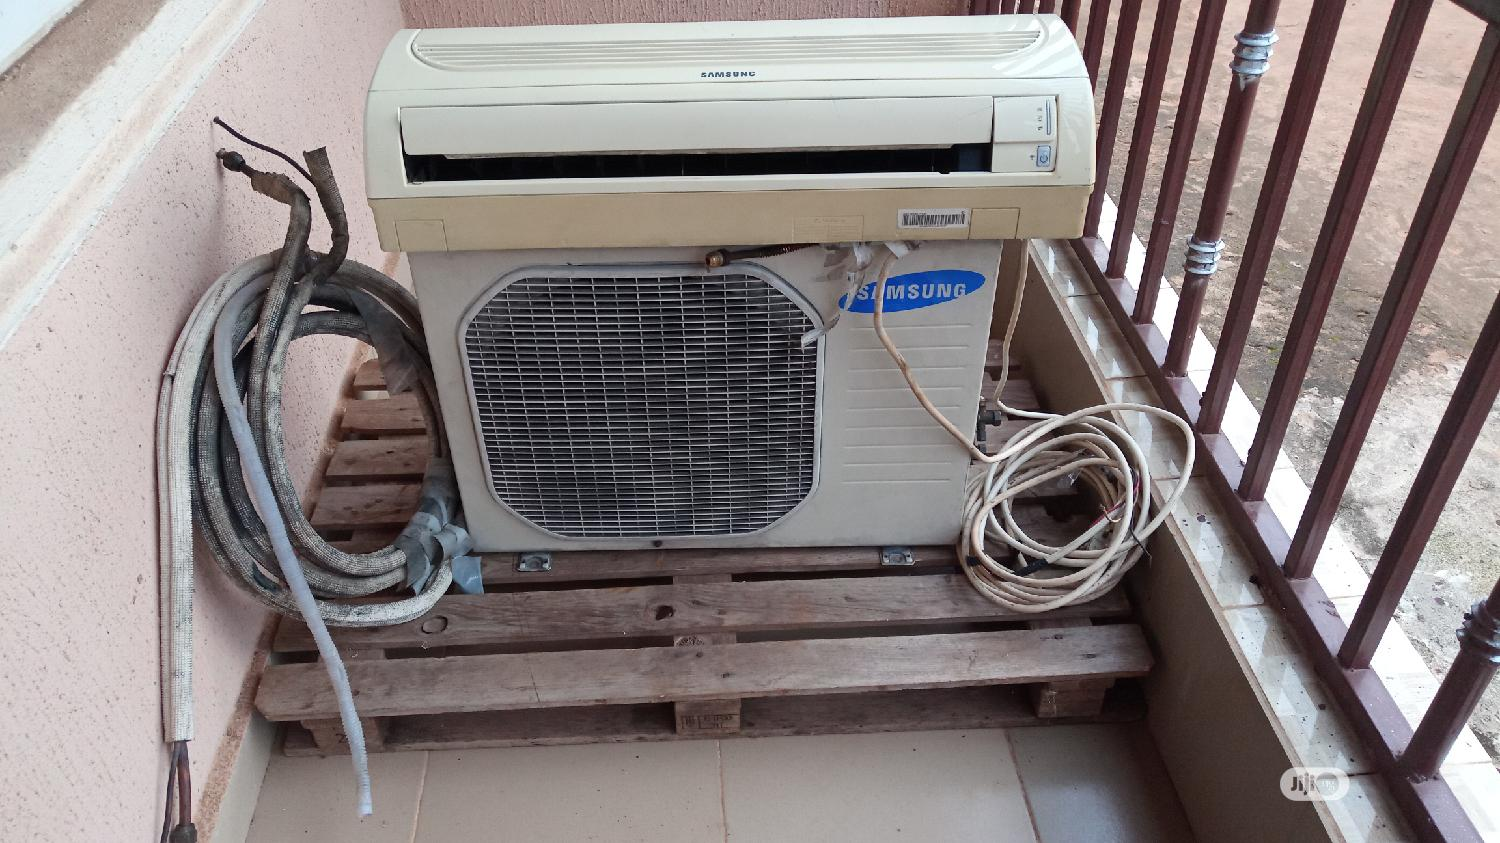 1.5 HP Samsung AC Split Unit